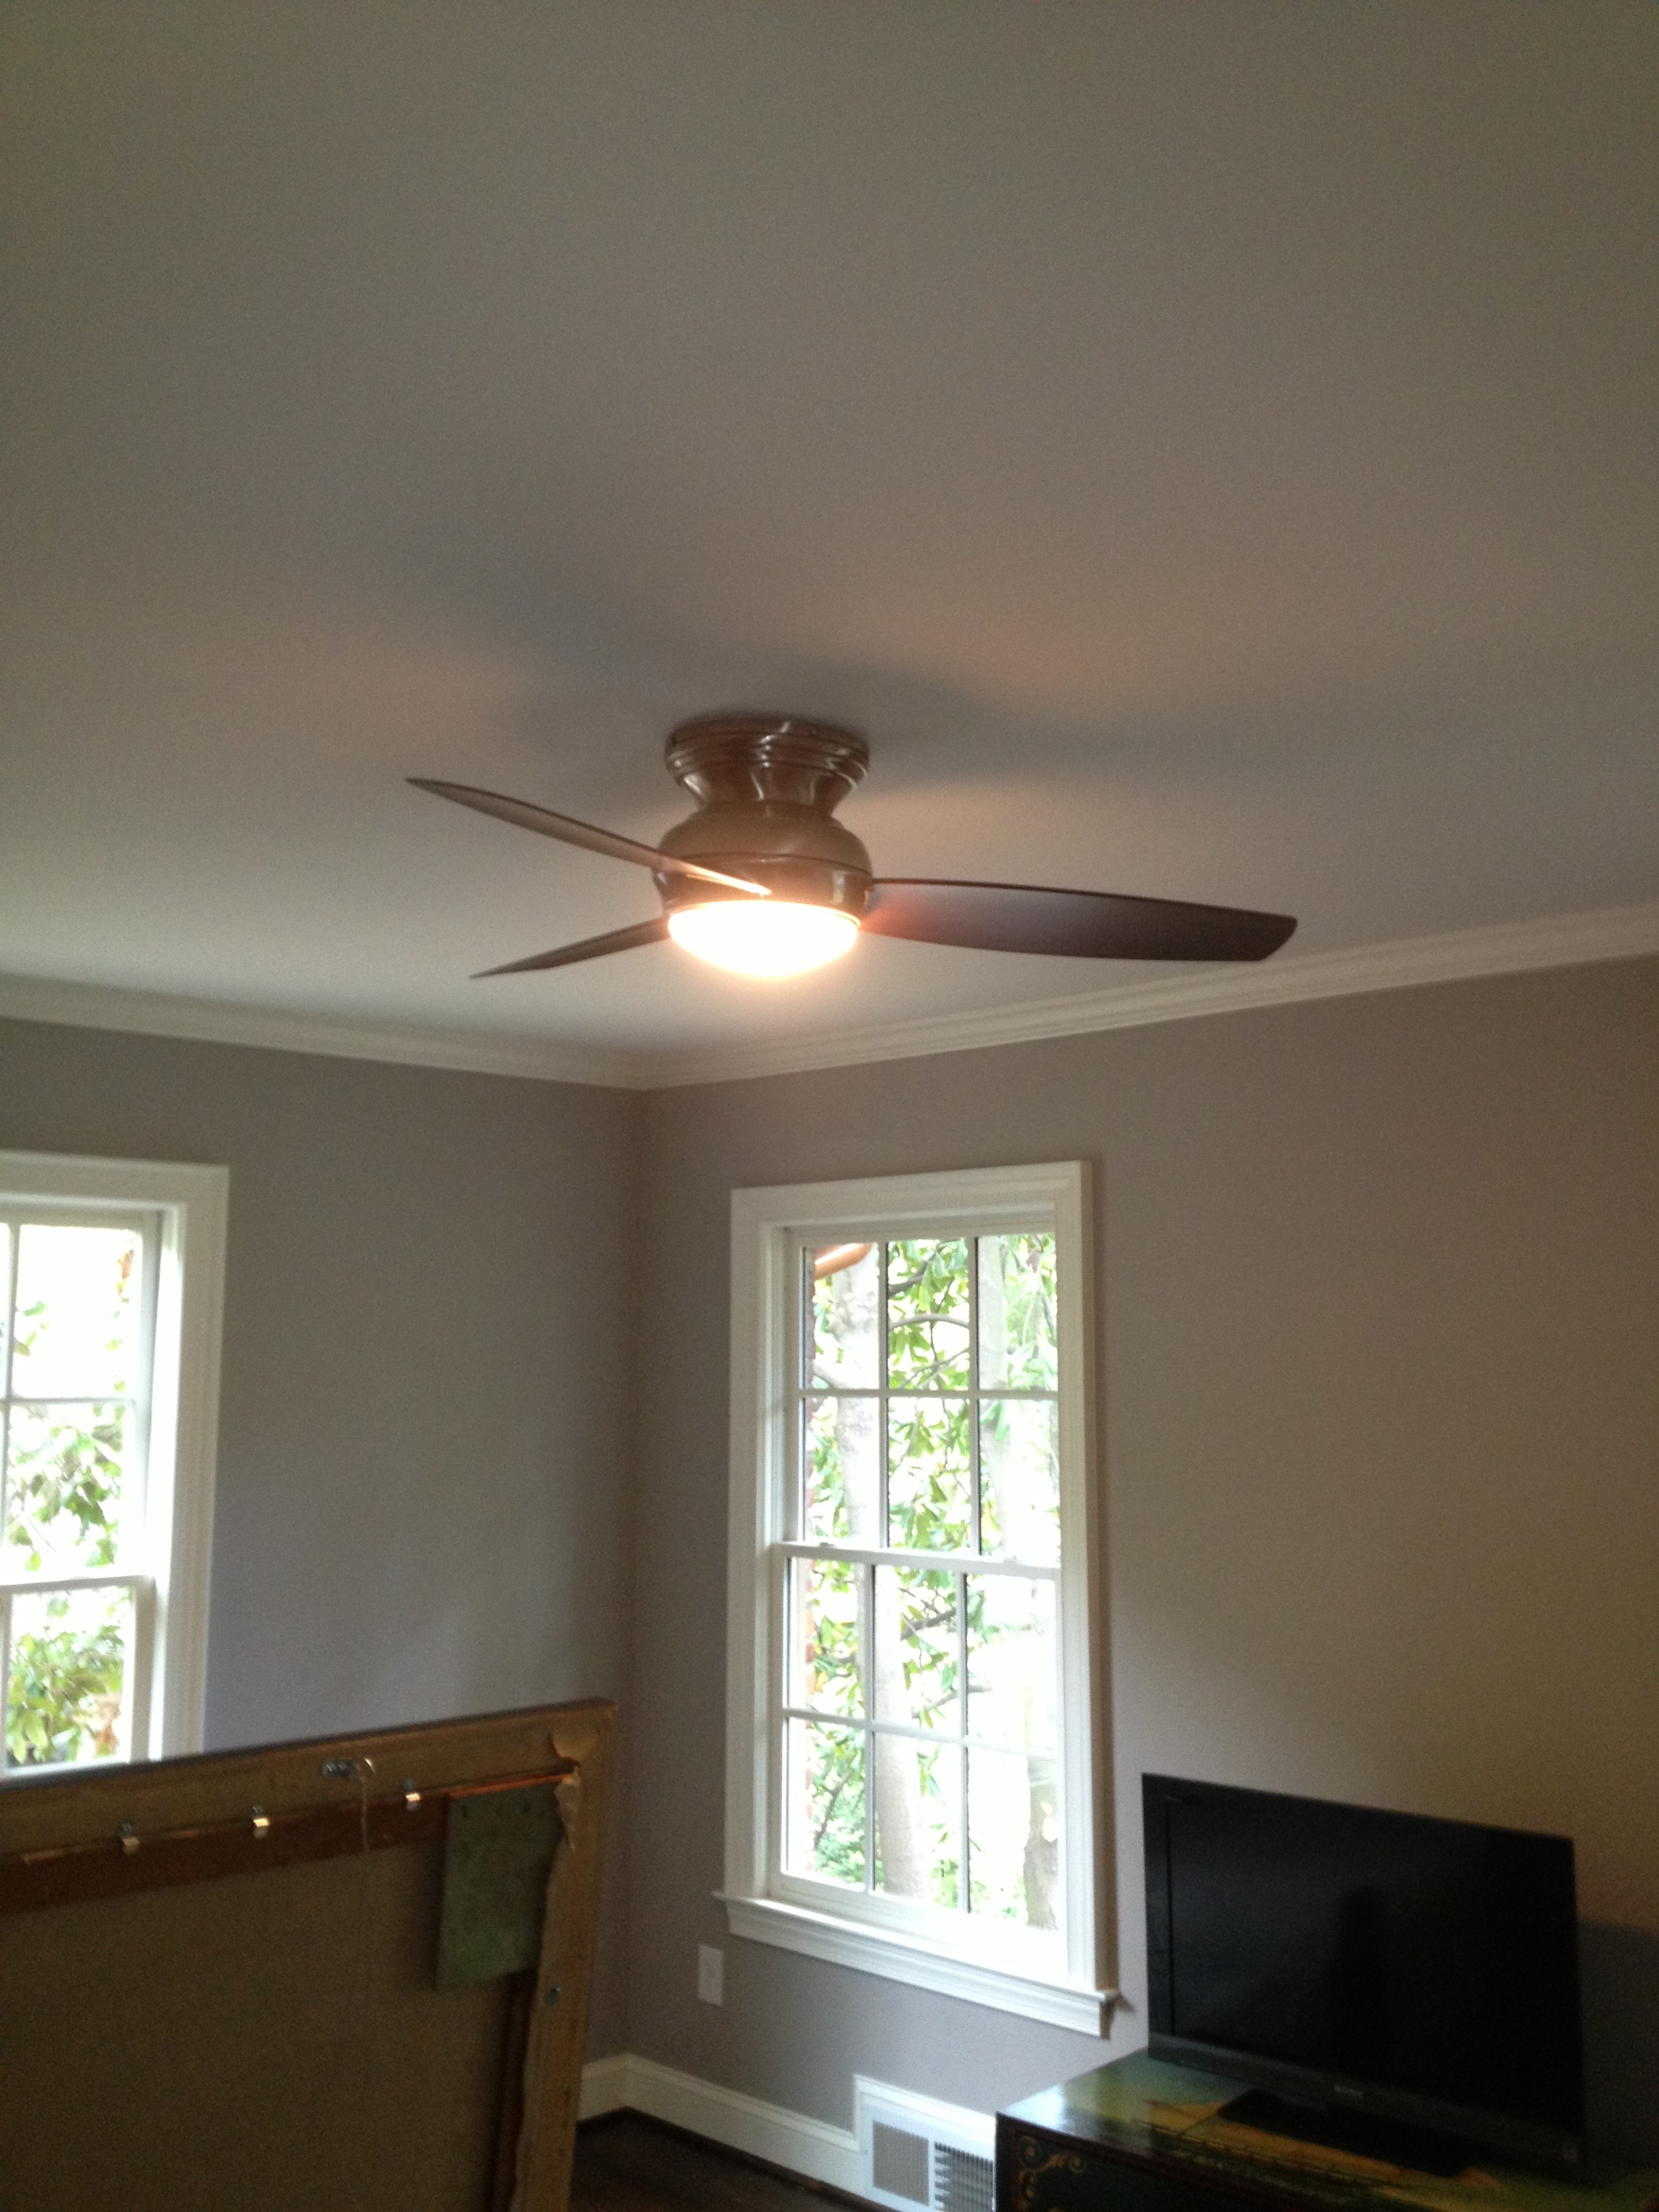 Ceiling fan installation the watt doctor for Bedroom ceiling fans